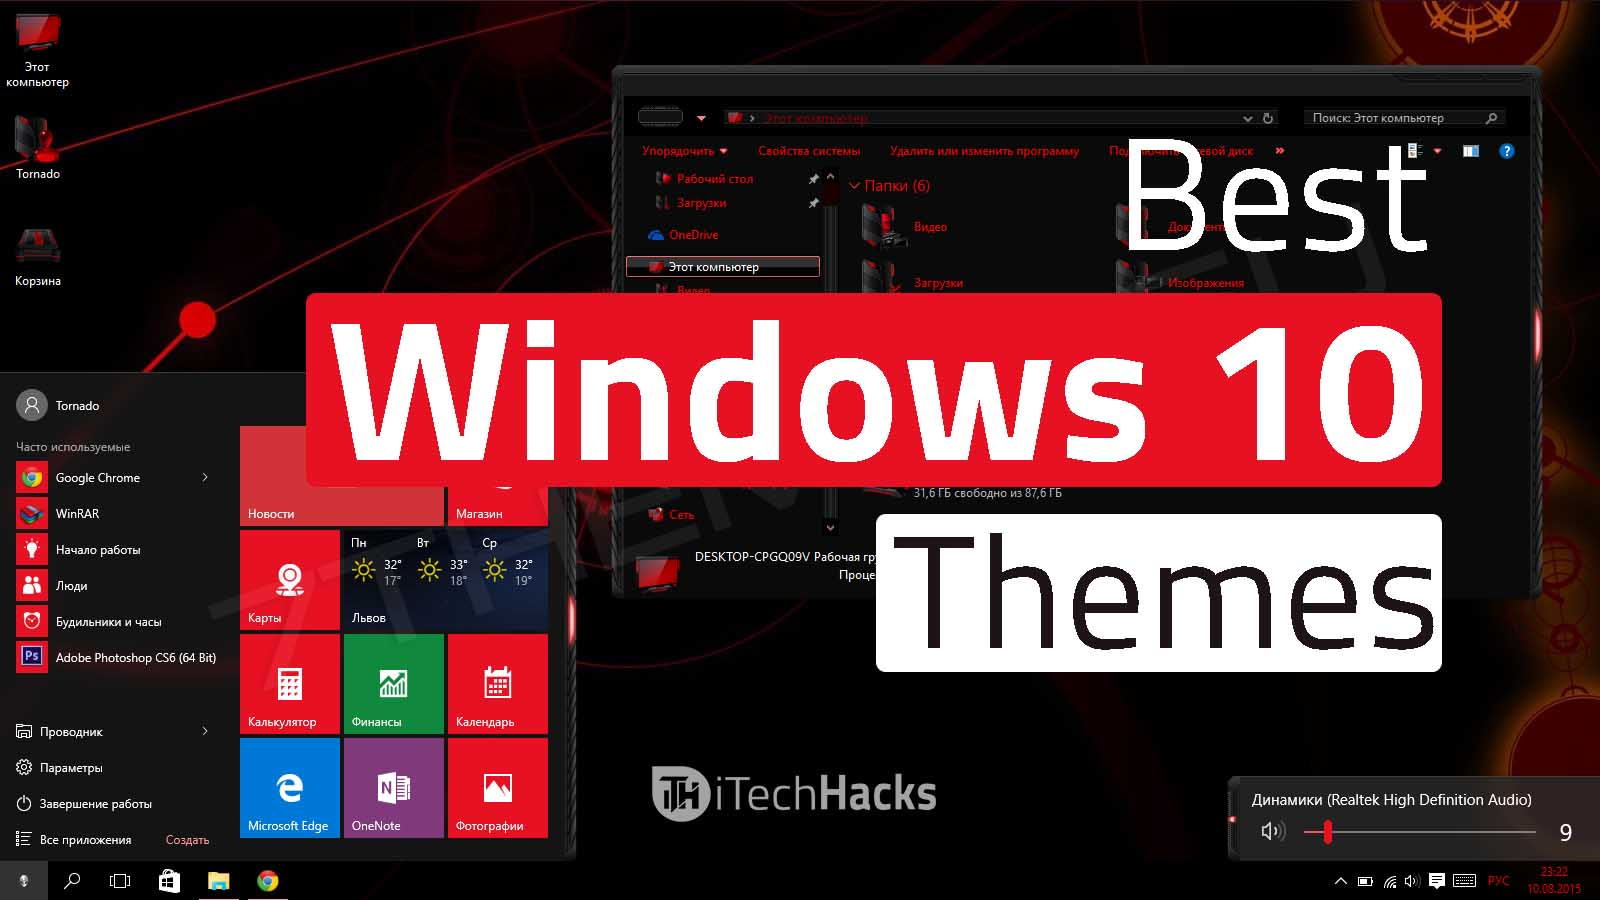 Free Windows 10 Themes And Skins 2019 Windows 10 Skins Pack